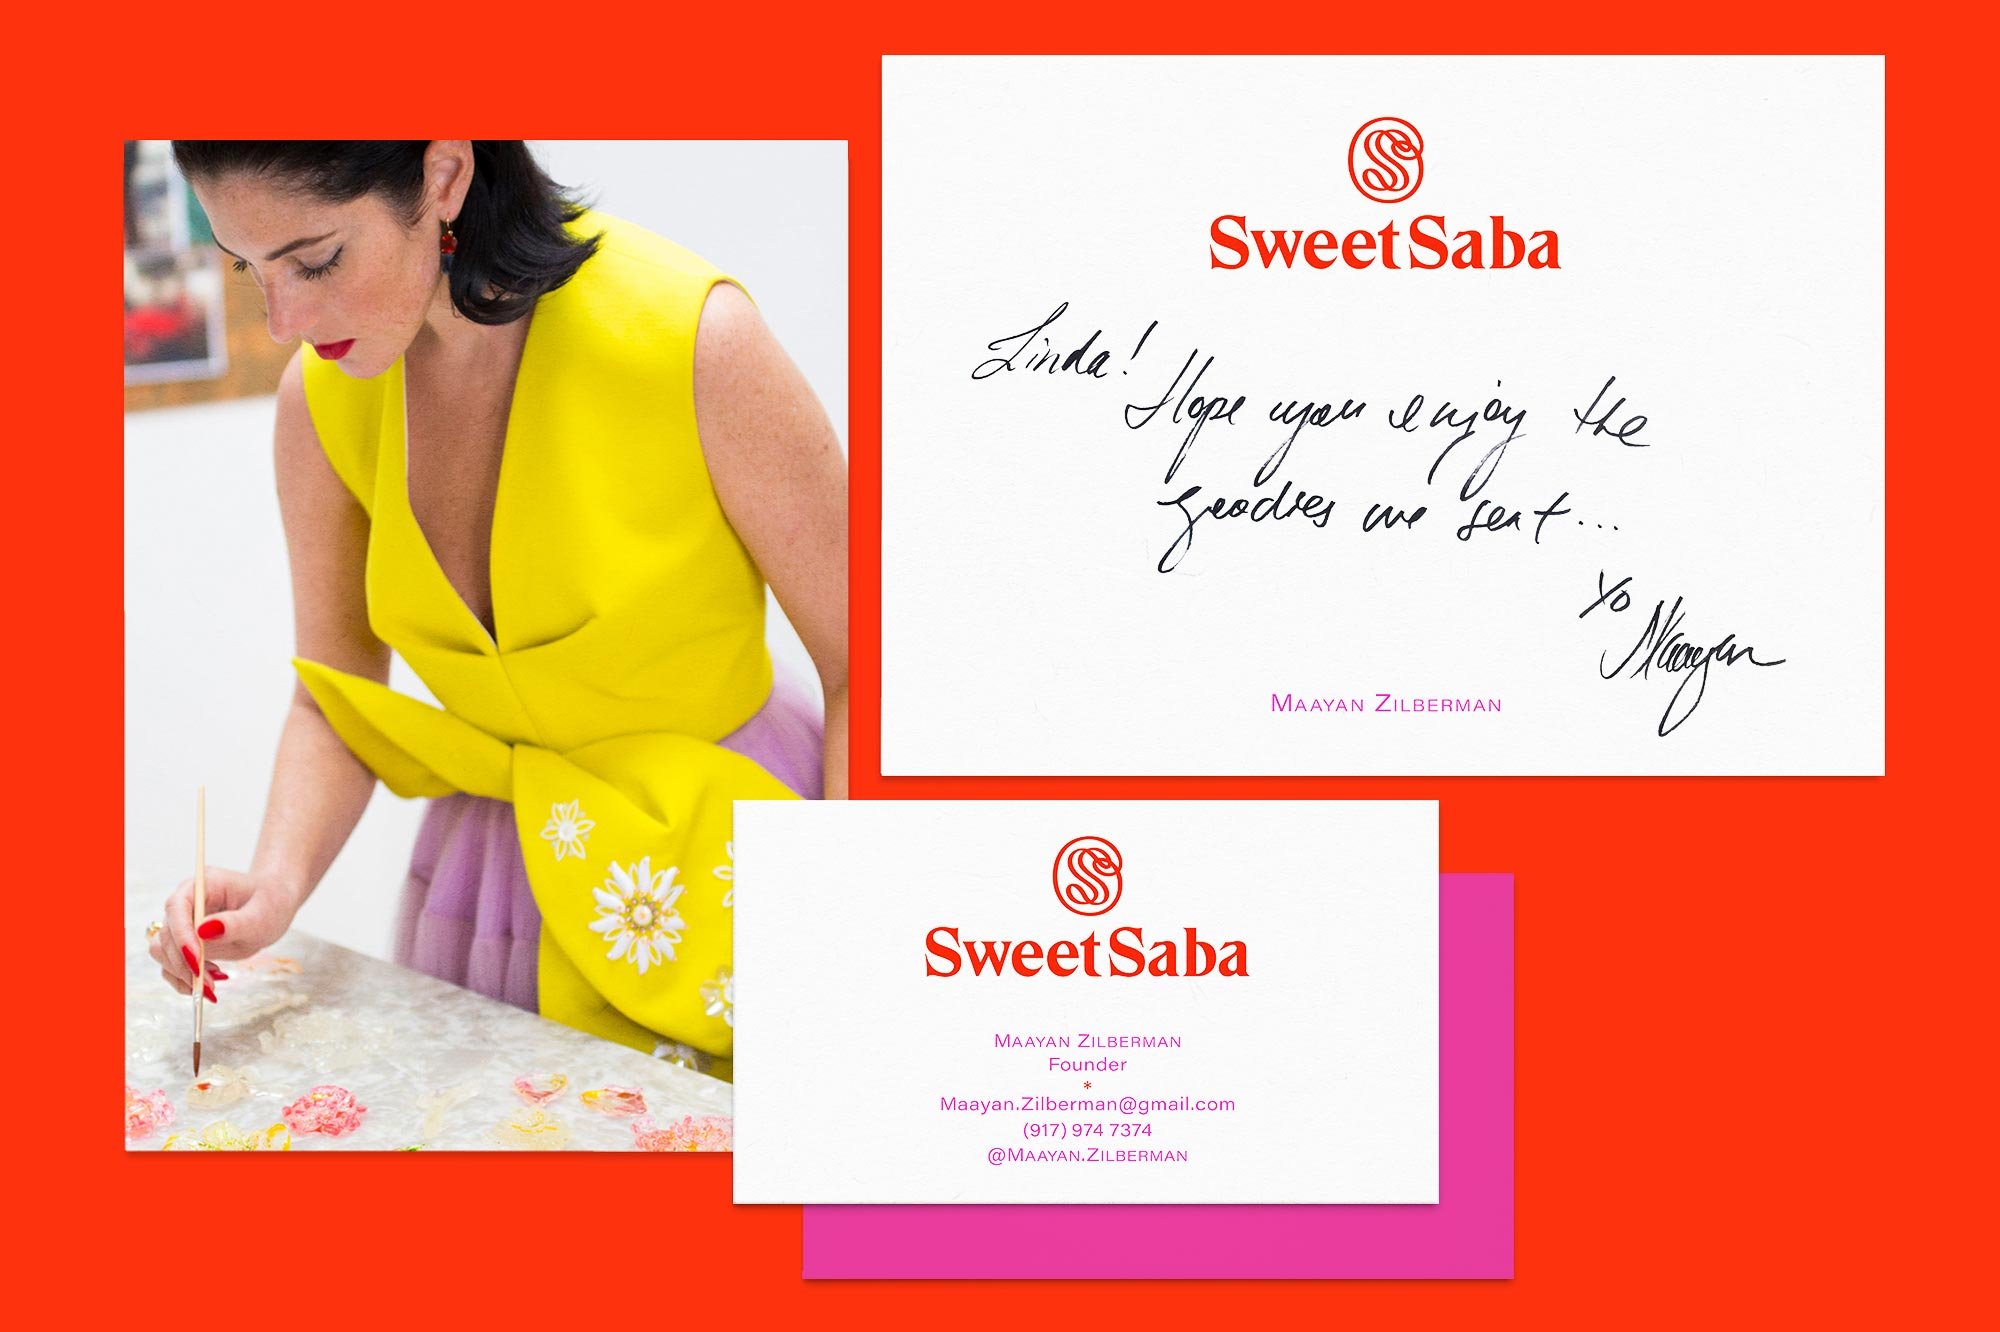 Art Direction and Identity Design for Sweet Saba